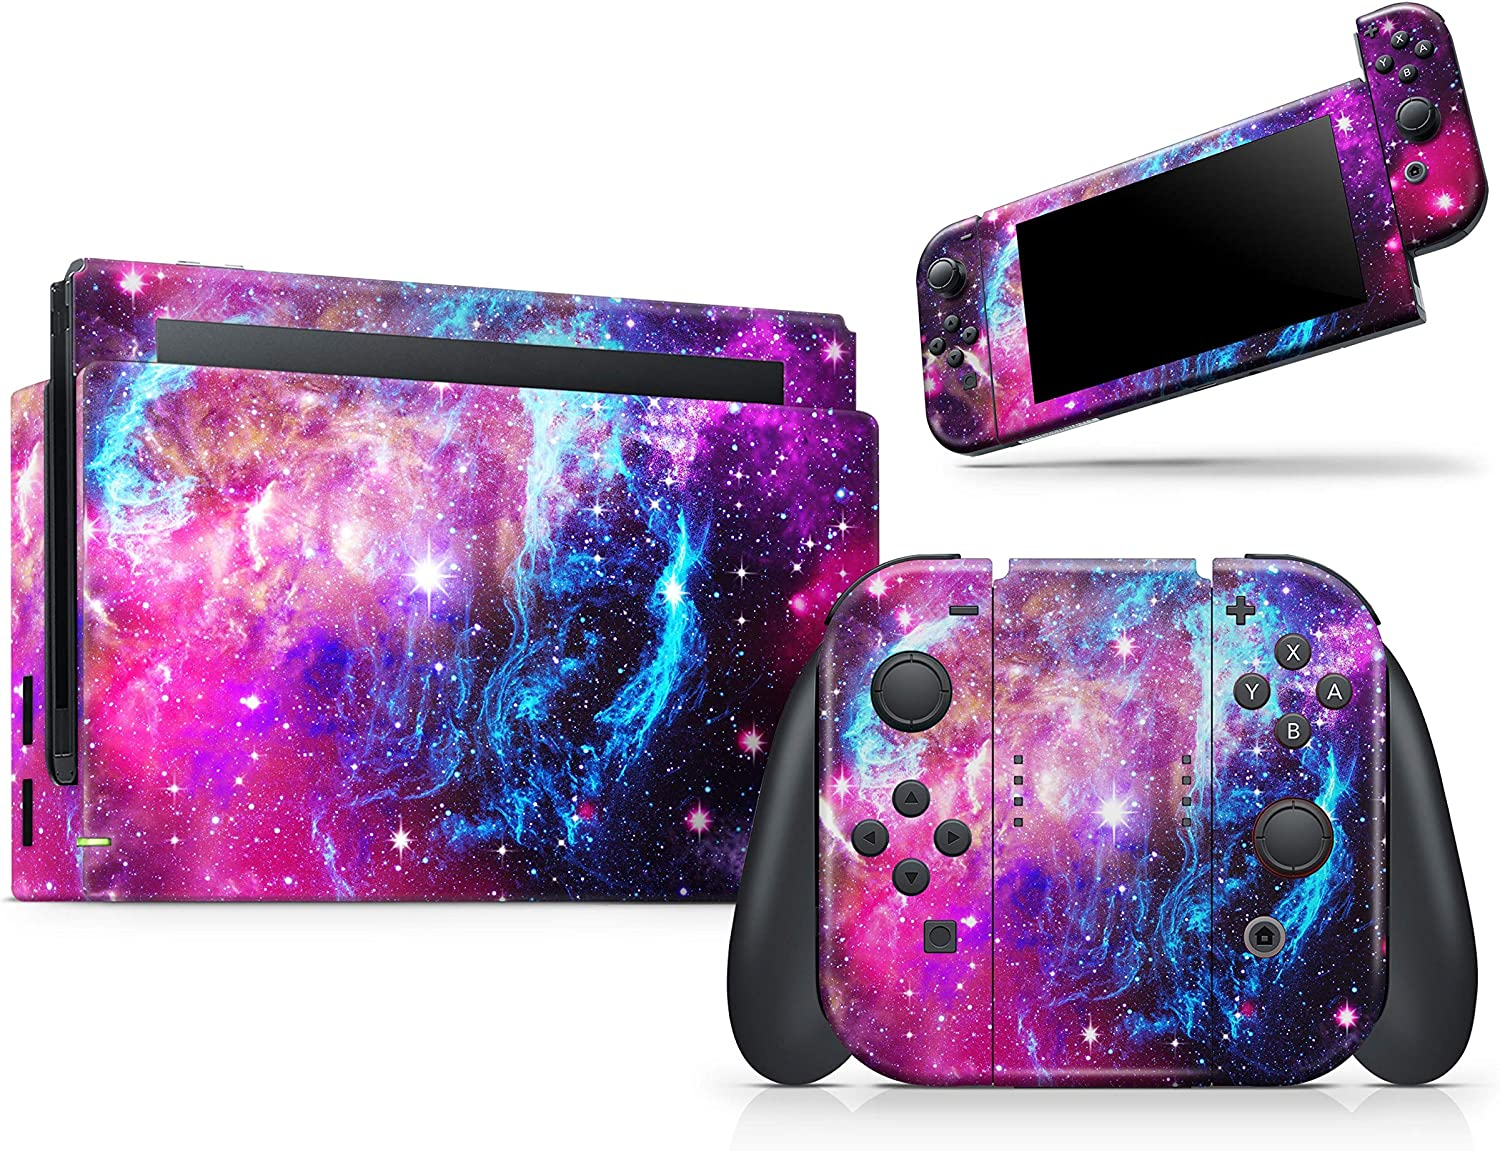 Design Skinz Bright Trippy Clearance SALE Limited Gifts time Space Scratch Protective Skin - Decal